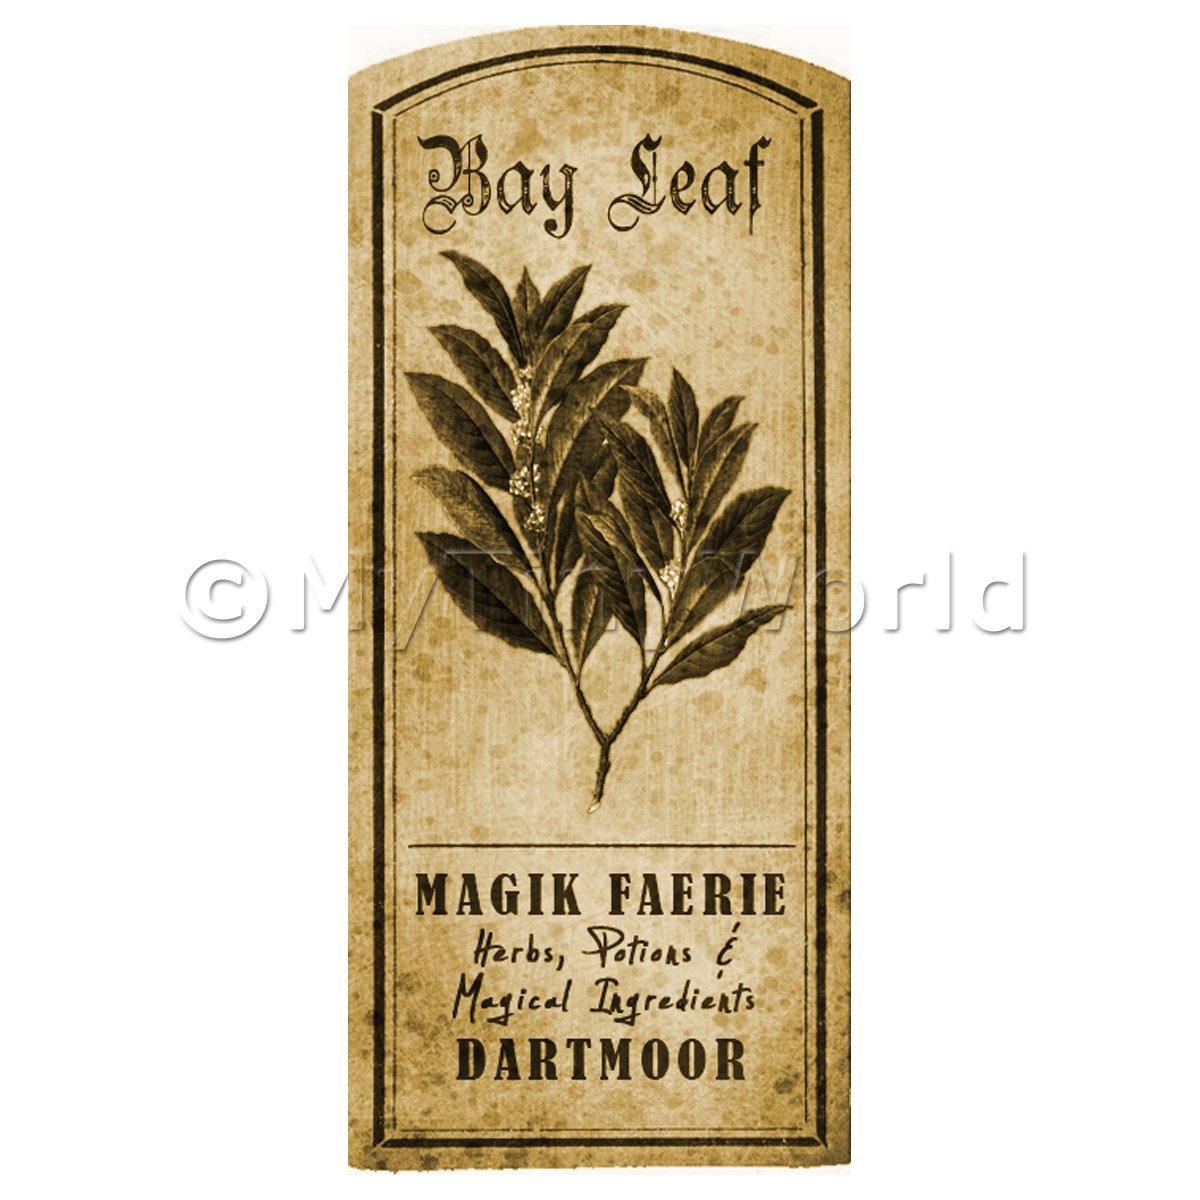 Dolls House Herbalist/Apothecary Bay Leaf Herb Short Sepia Label